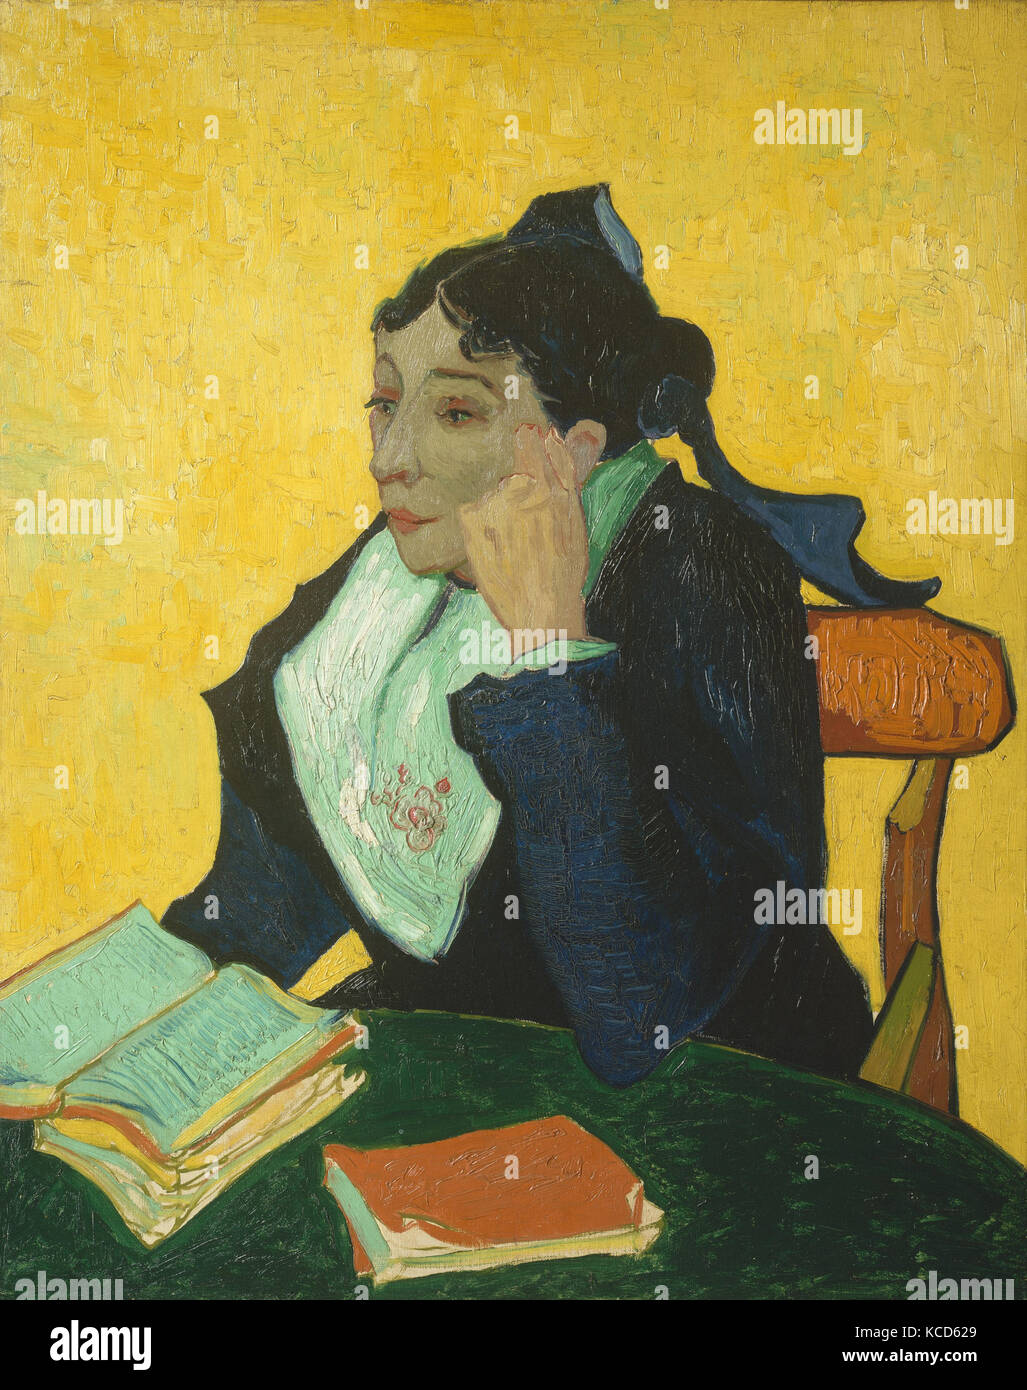 an analysis of larlesienne madame joseph michel ginoux a painting by vincent van gogh Larlesienne: madame joseph-michel ginoux, by vincent van gogh, 1888-89, dutch post-impressionist this is an oil on canvas painting of marie ginoux madame roulin and her baby, by vincent van gogh, 1888, dutch post-impressionist.